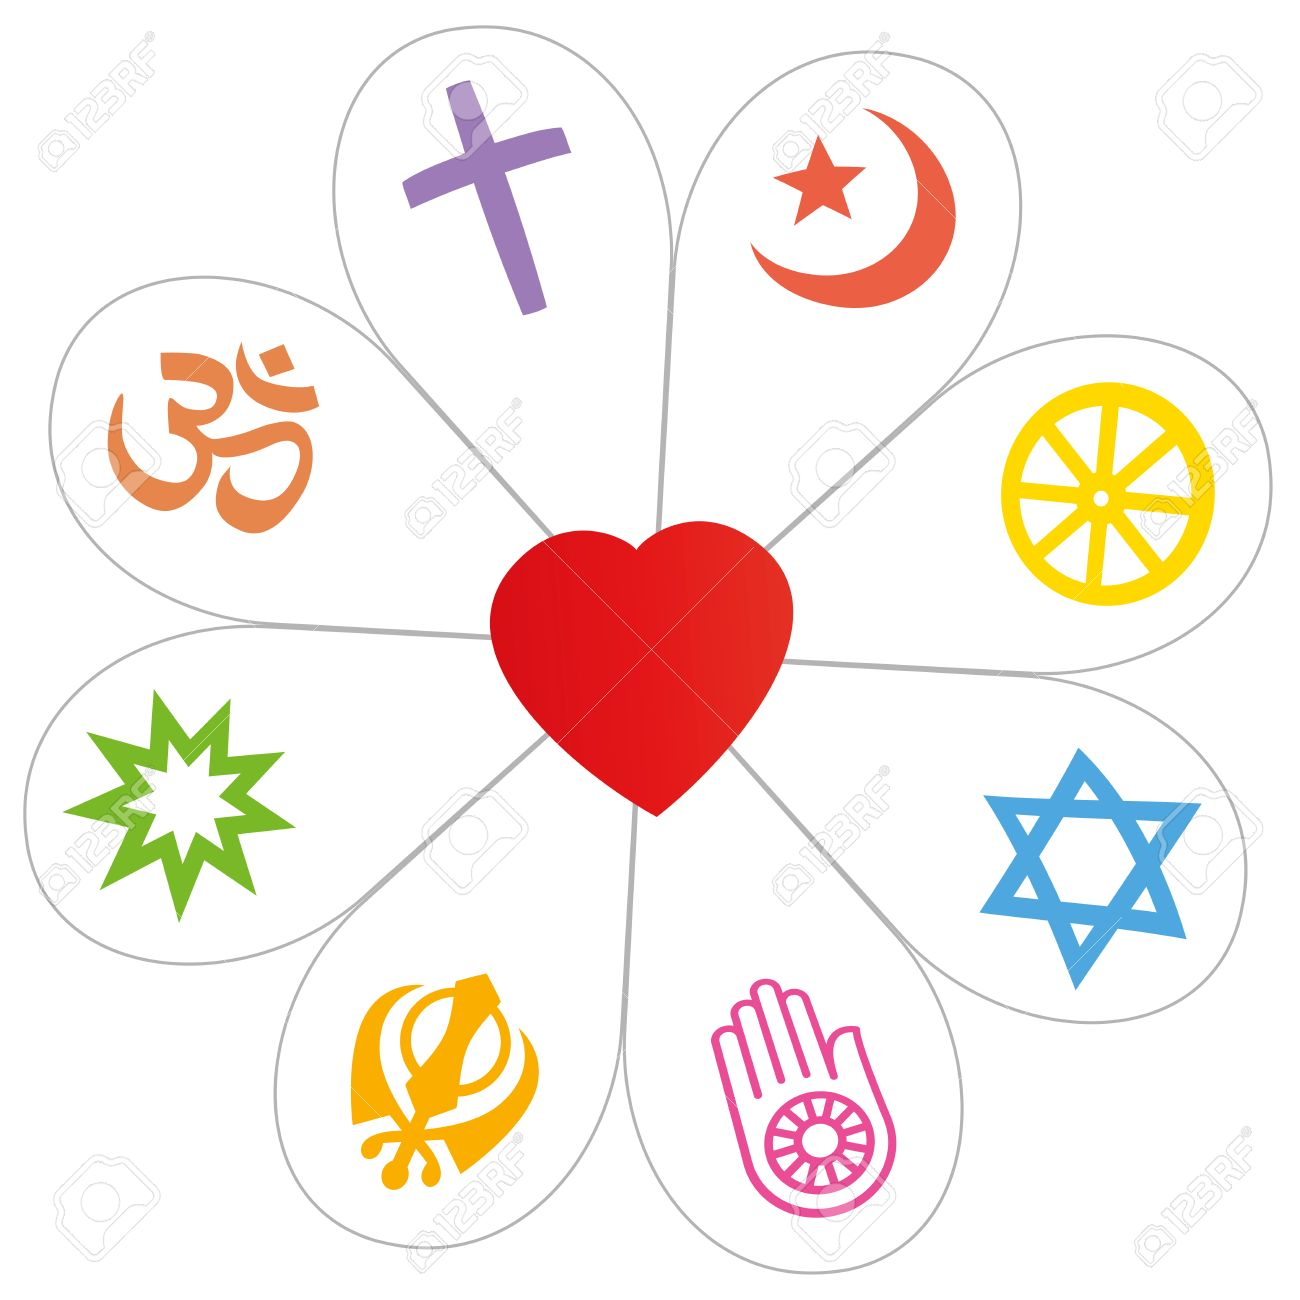 Religious Symbols Did Form A Flower With A Heart As A Symbol